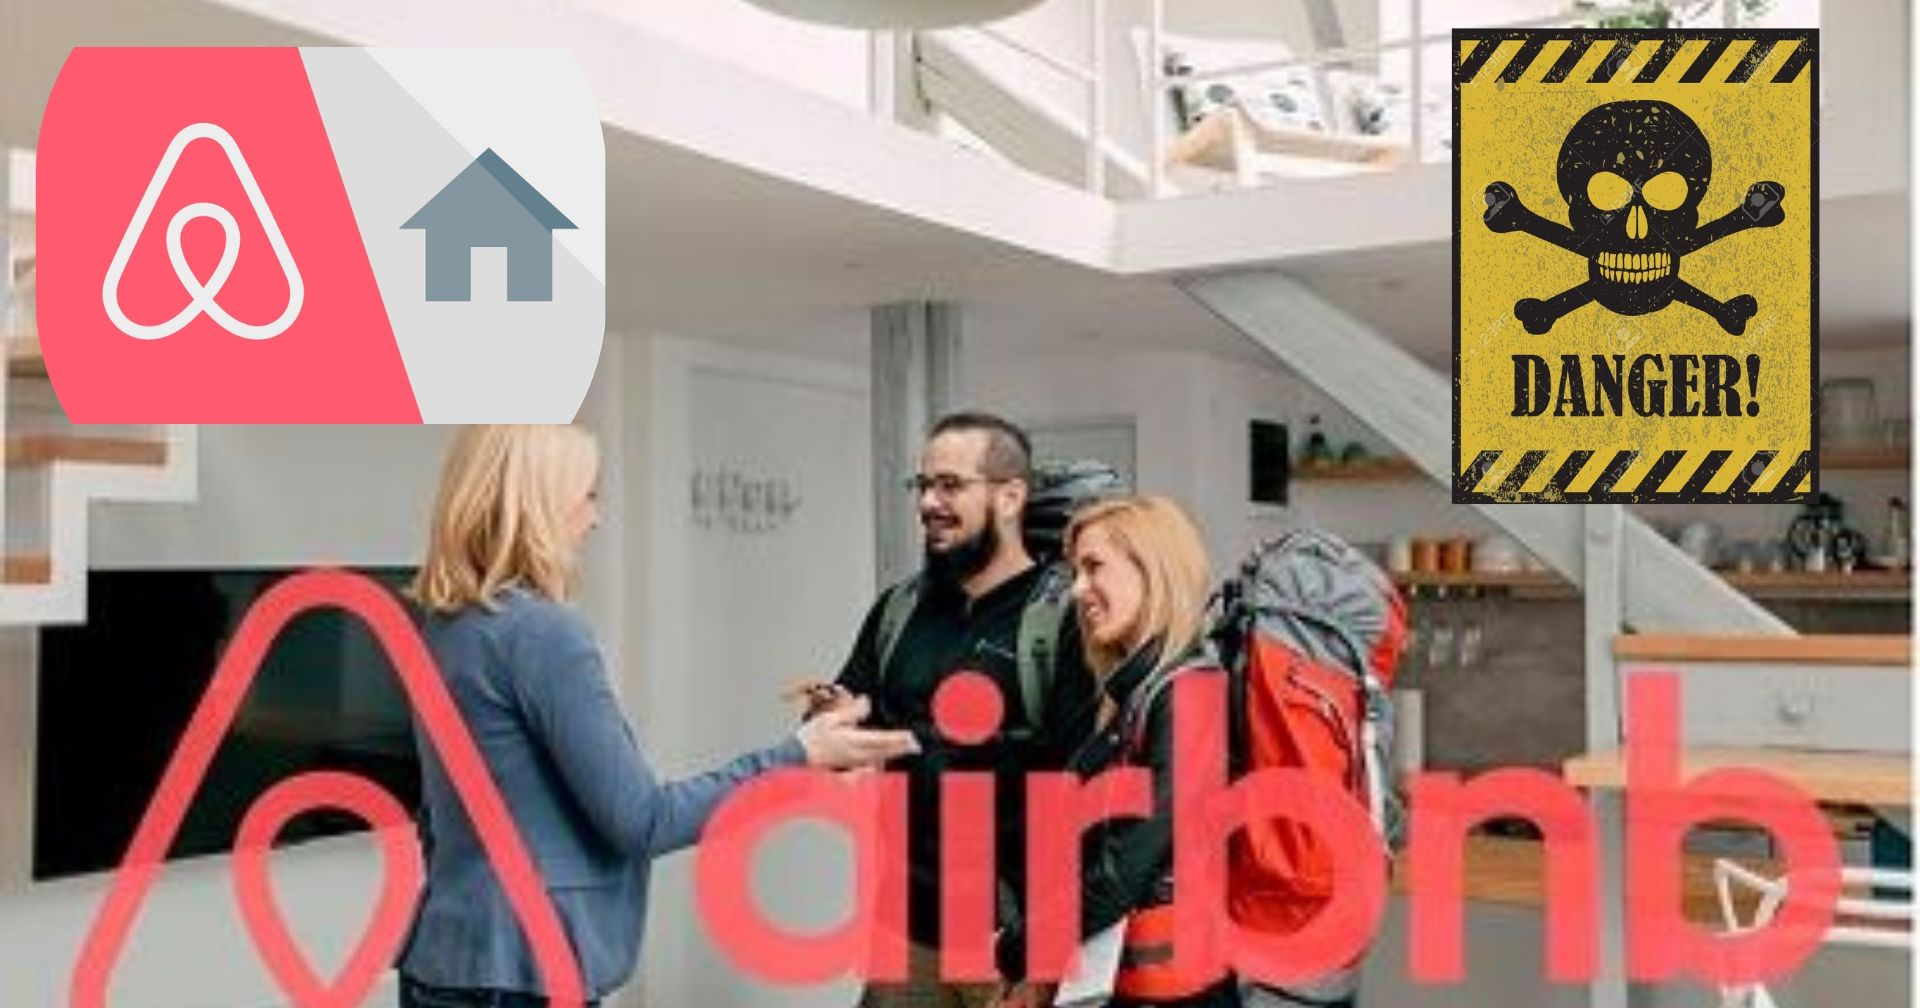 Is airbnb safe?